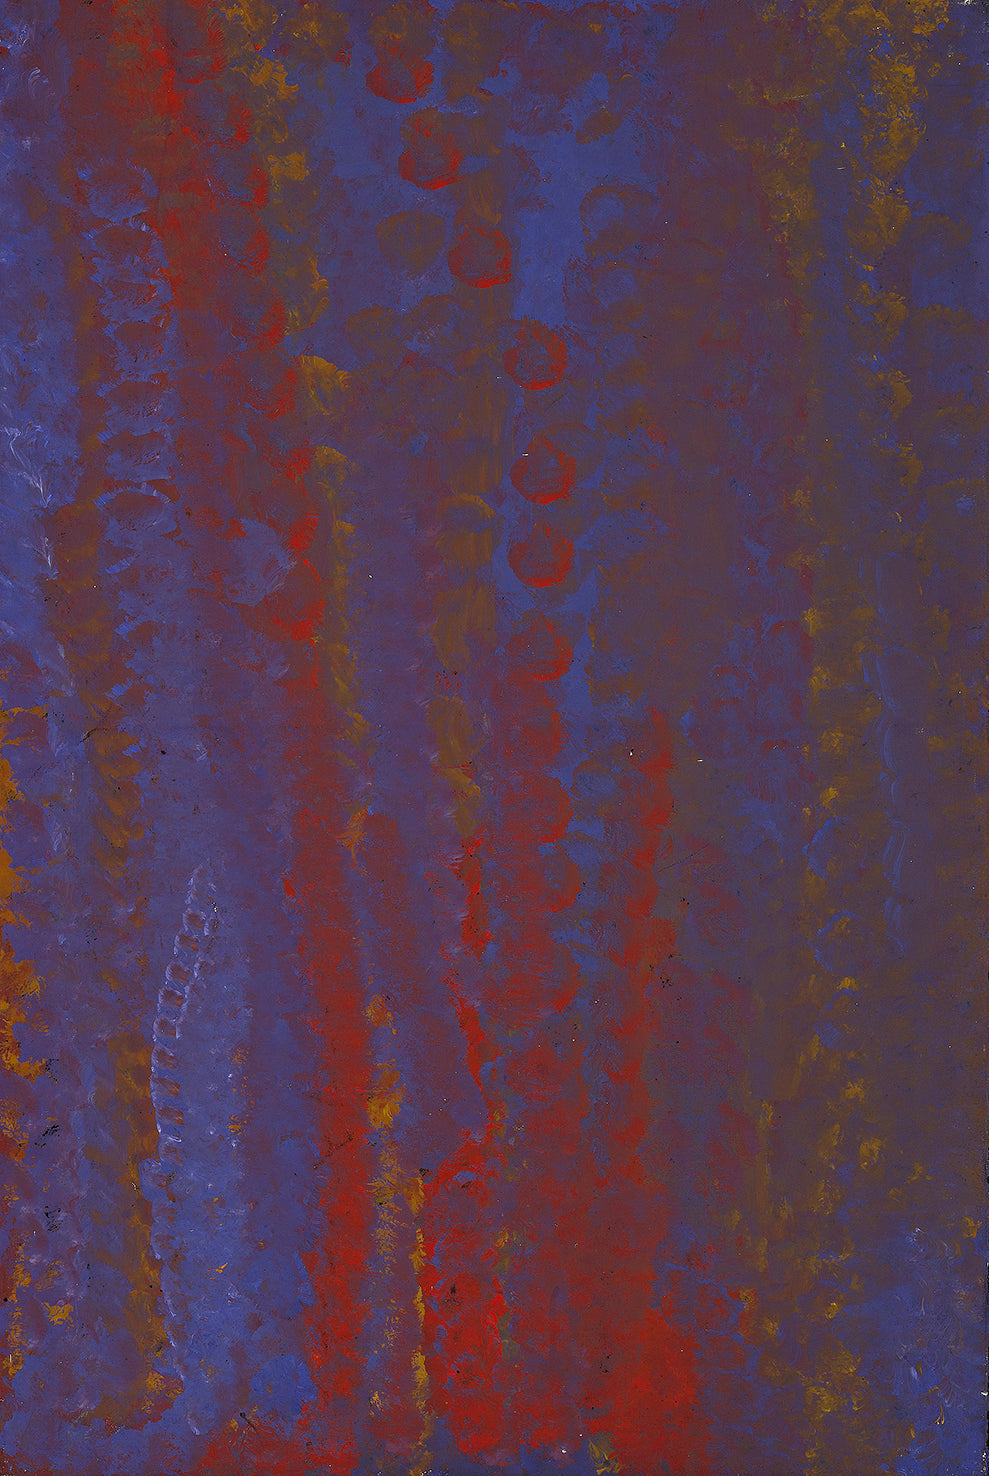 Emily Kame Kngwarreye, Painting 94F048, 1994, 60x90cm - Delmore Gallery